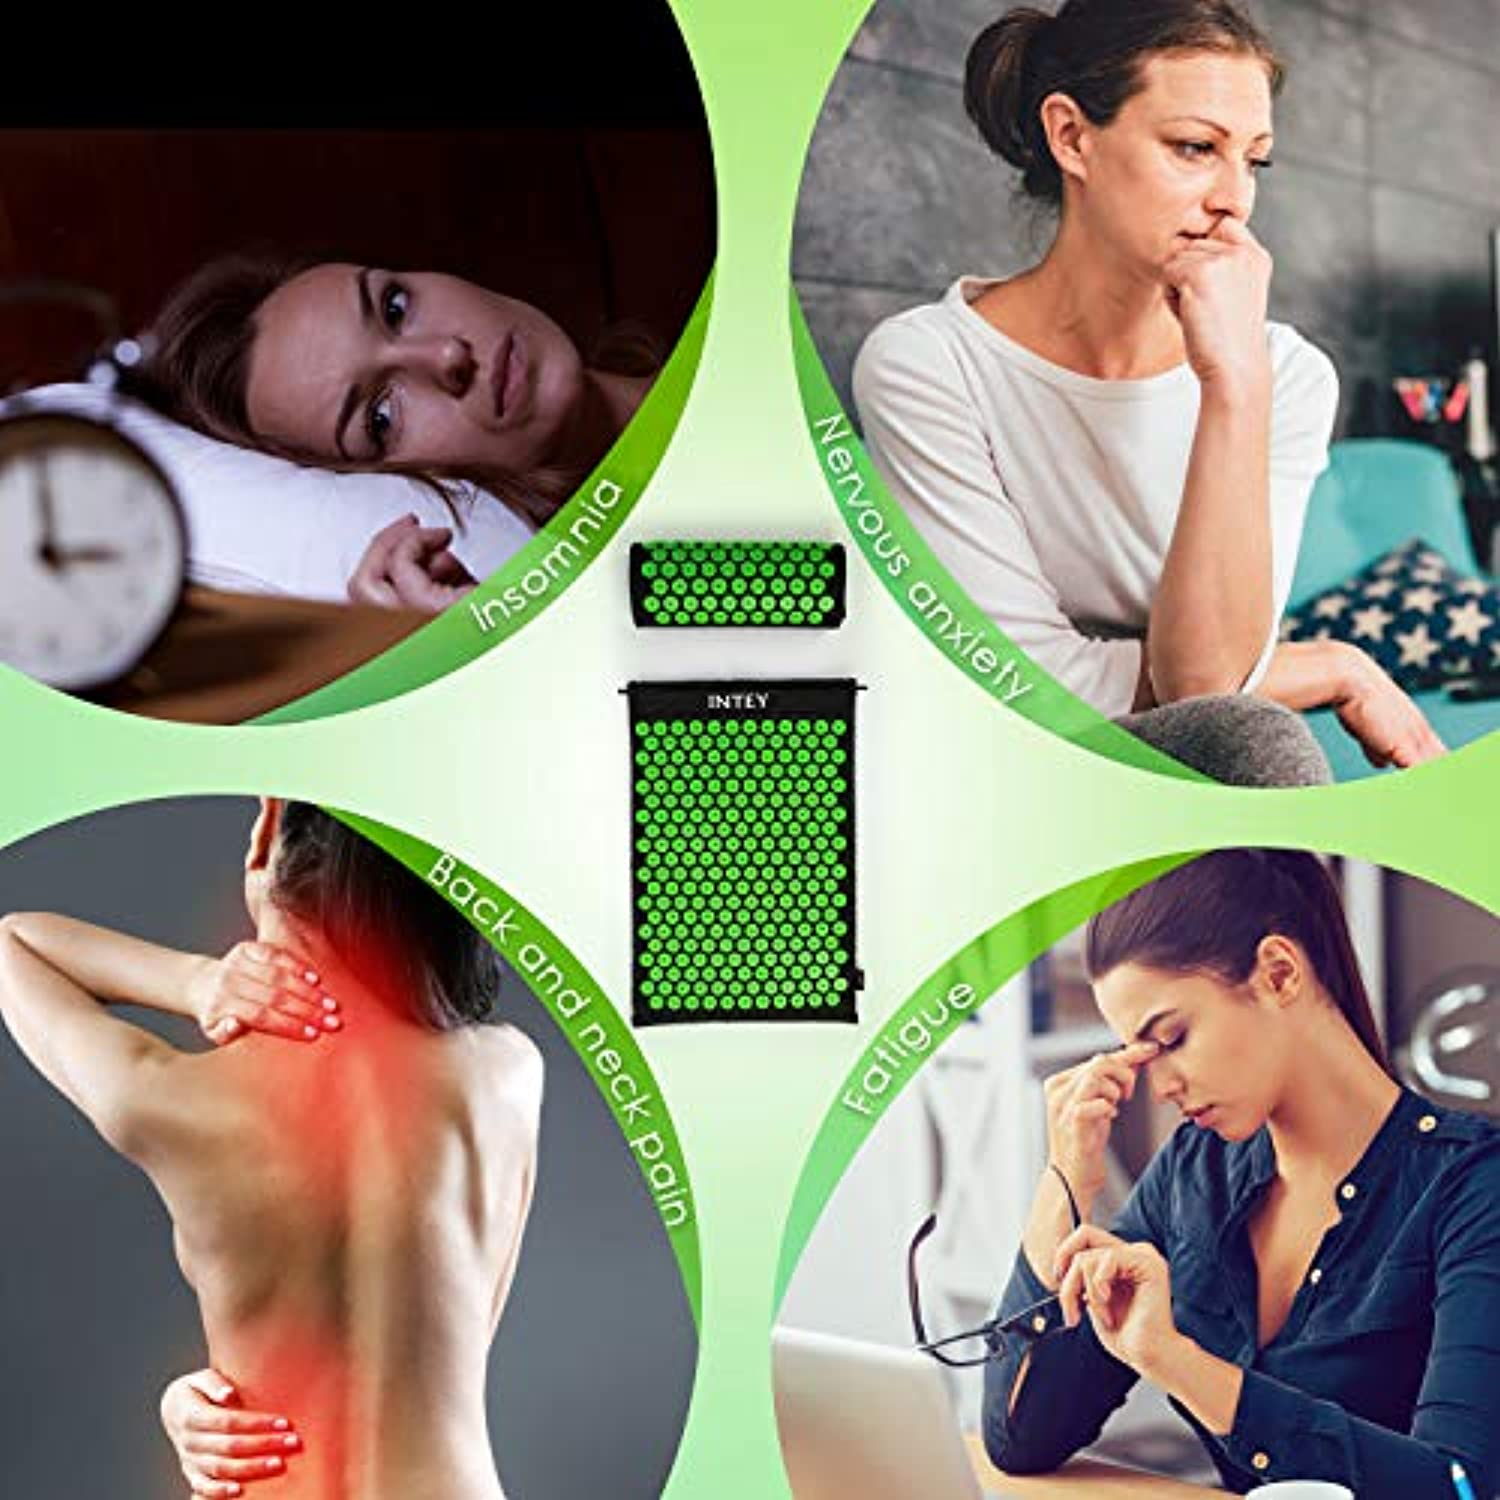 Wellness Therapy Acupuncture Mat Set Helps Release Muscle Pain and Tension - smrt-life.com